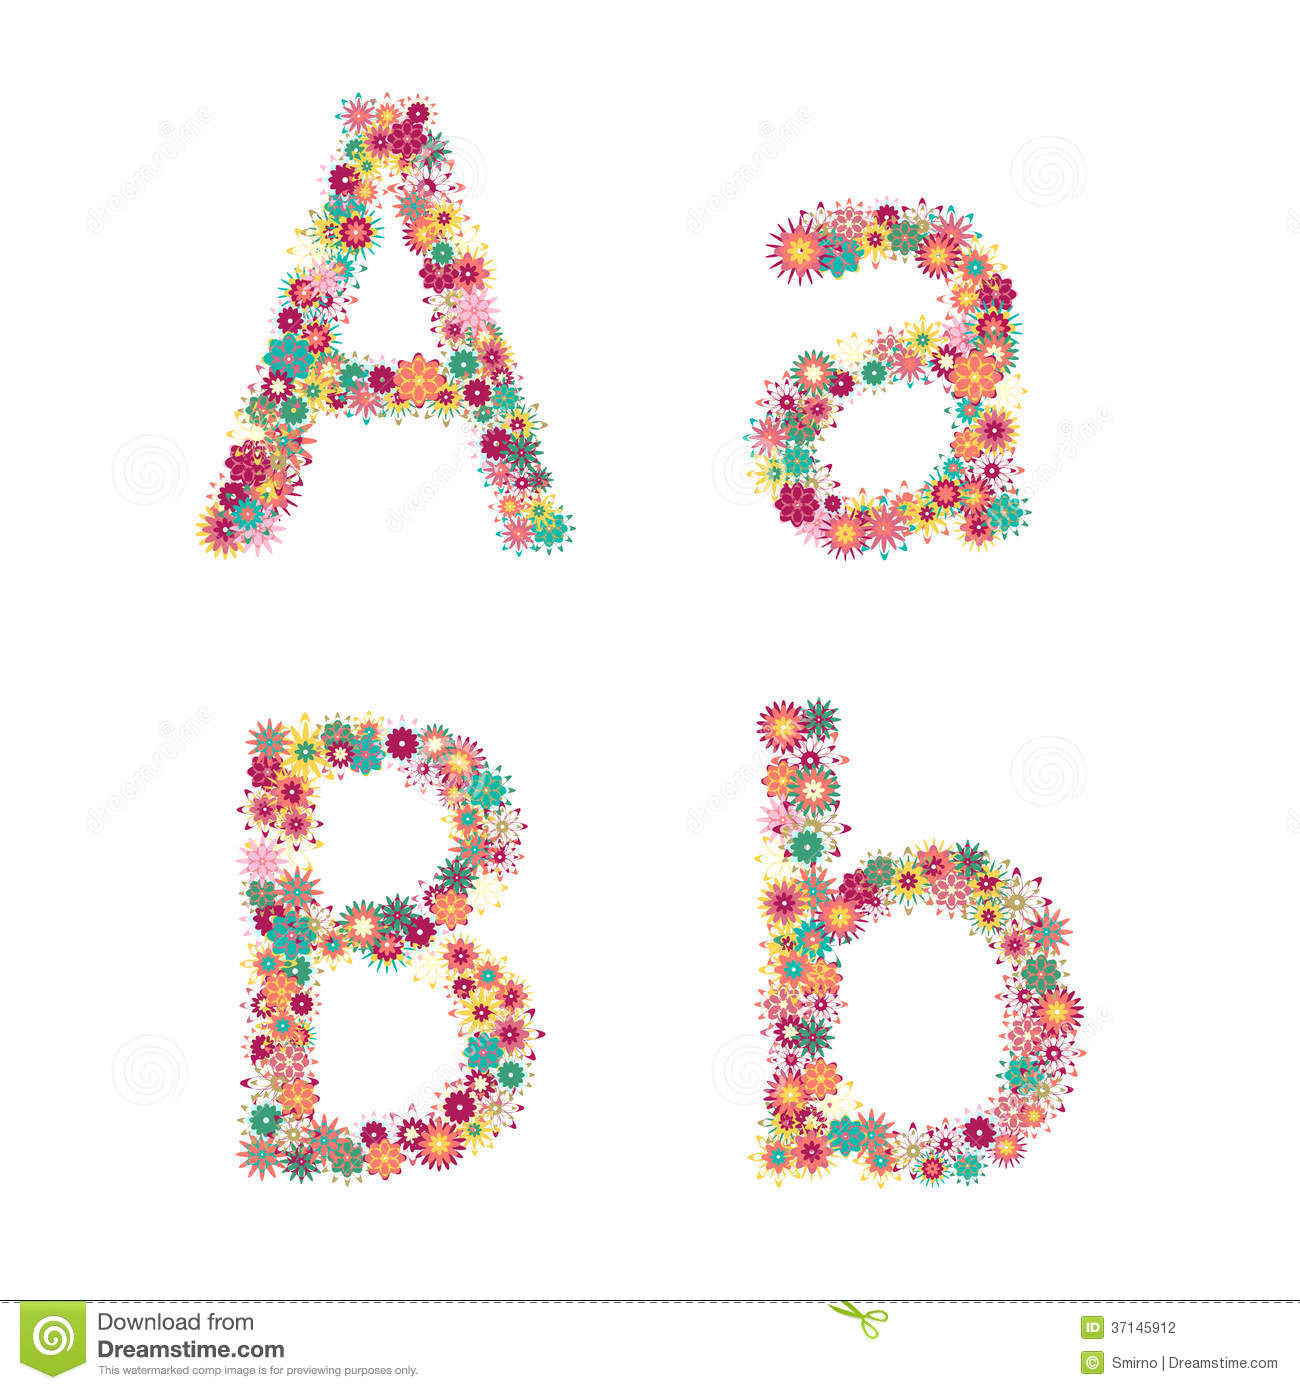 12 flower letters font images flower fonts alphabet letters alphabet fonts with flowers and